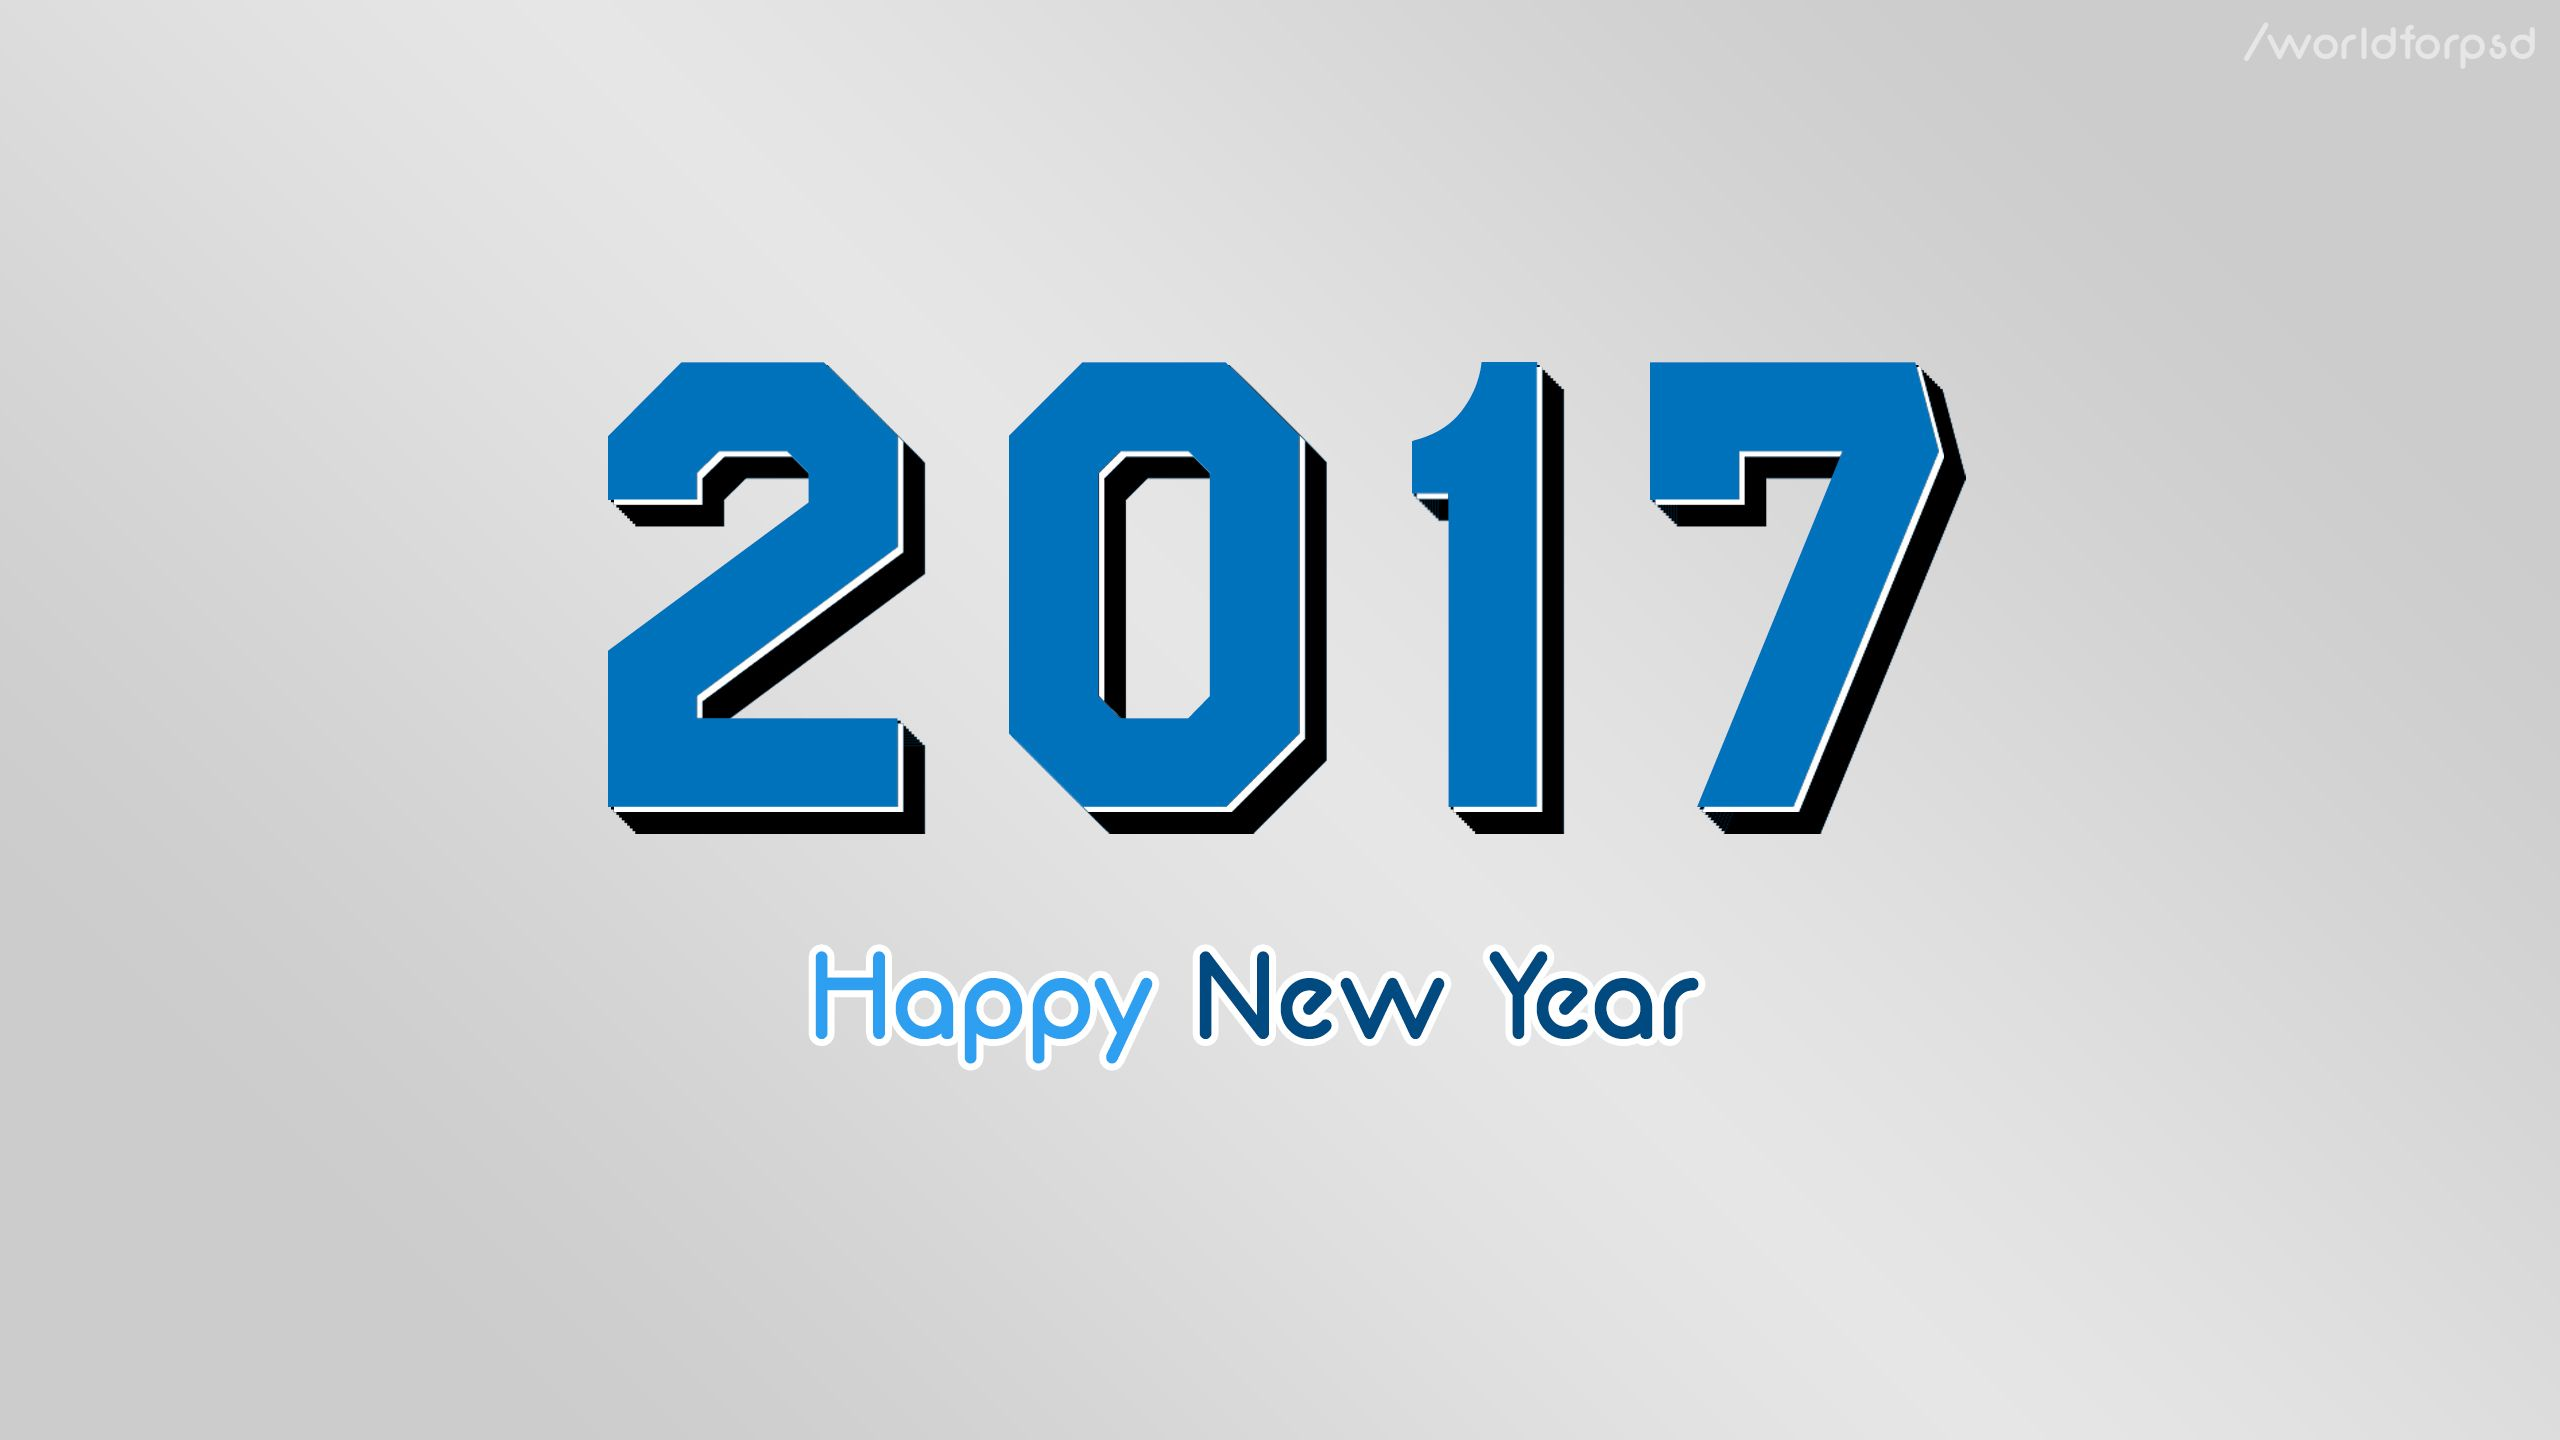 New year 2017 wallpaper graphic design flyers brochures new year 2017 wallpaper baditri Gallery